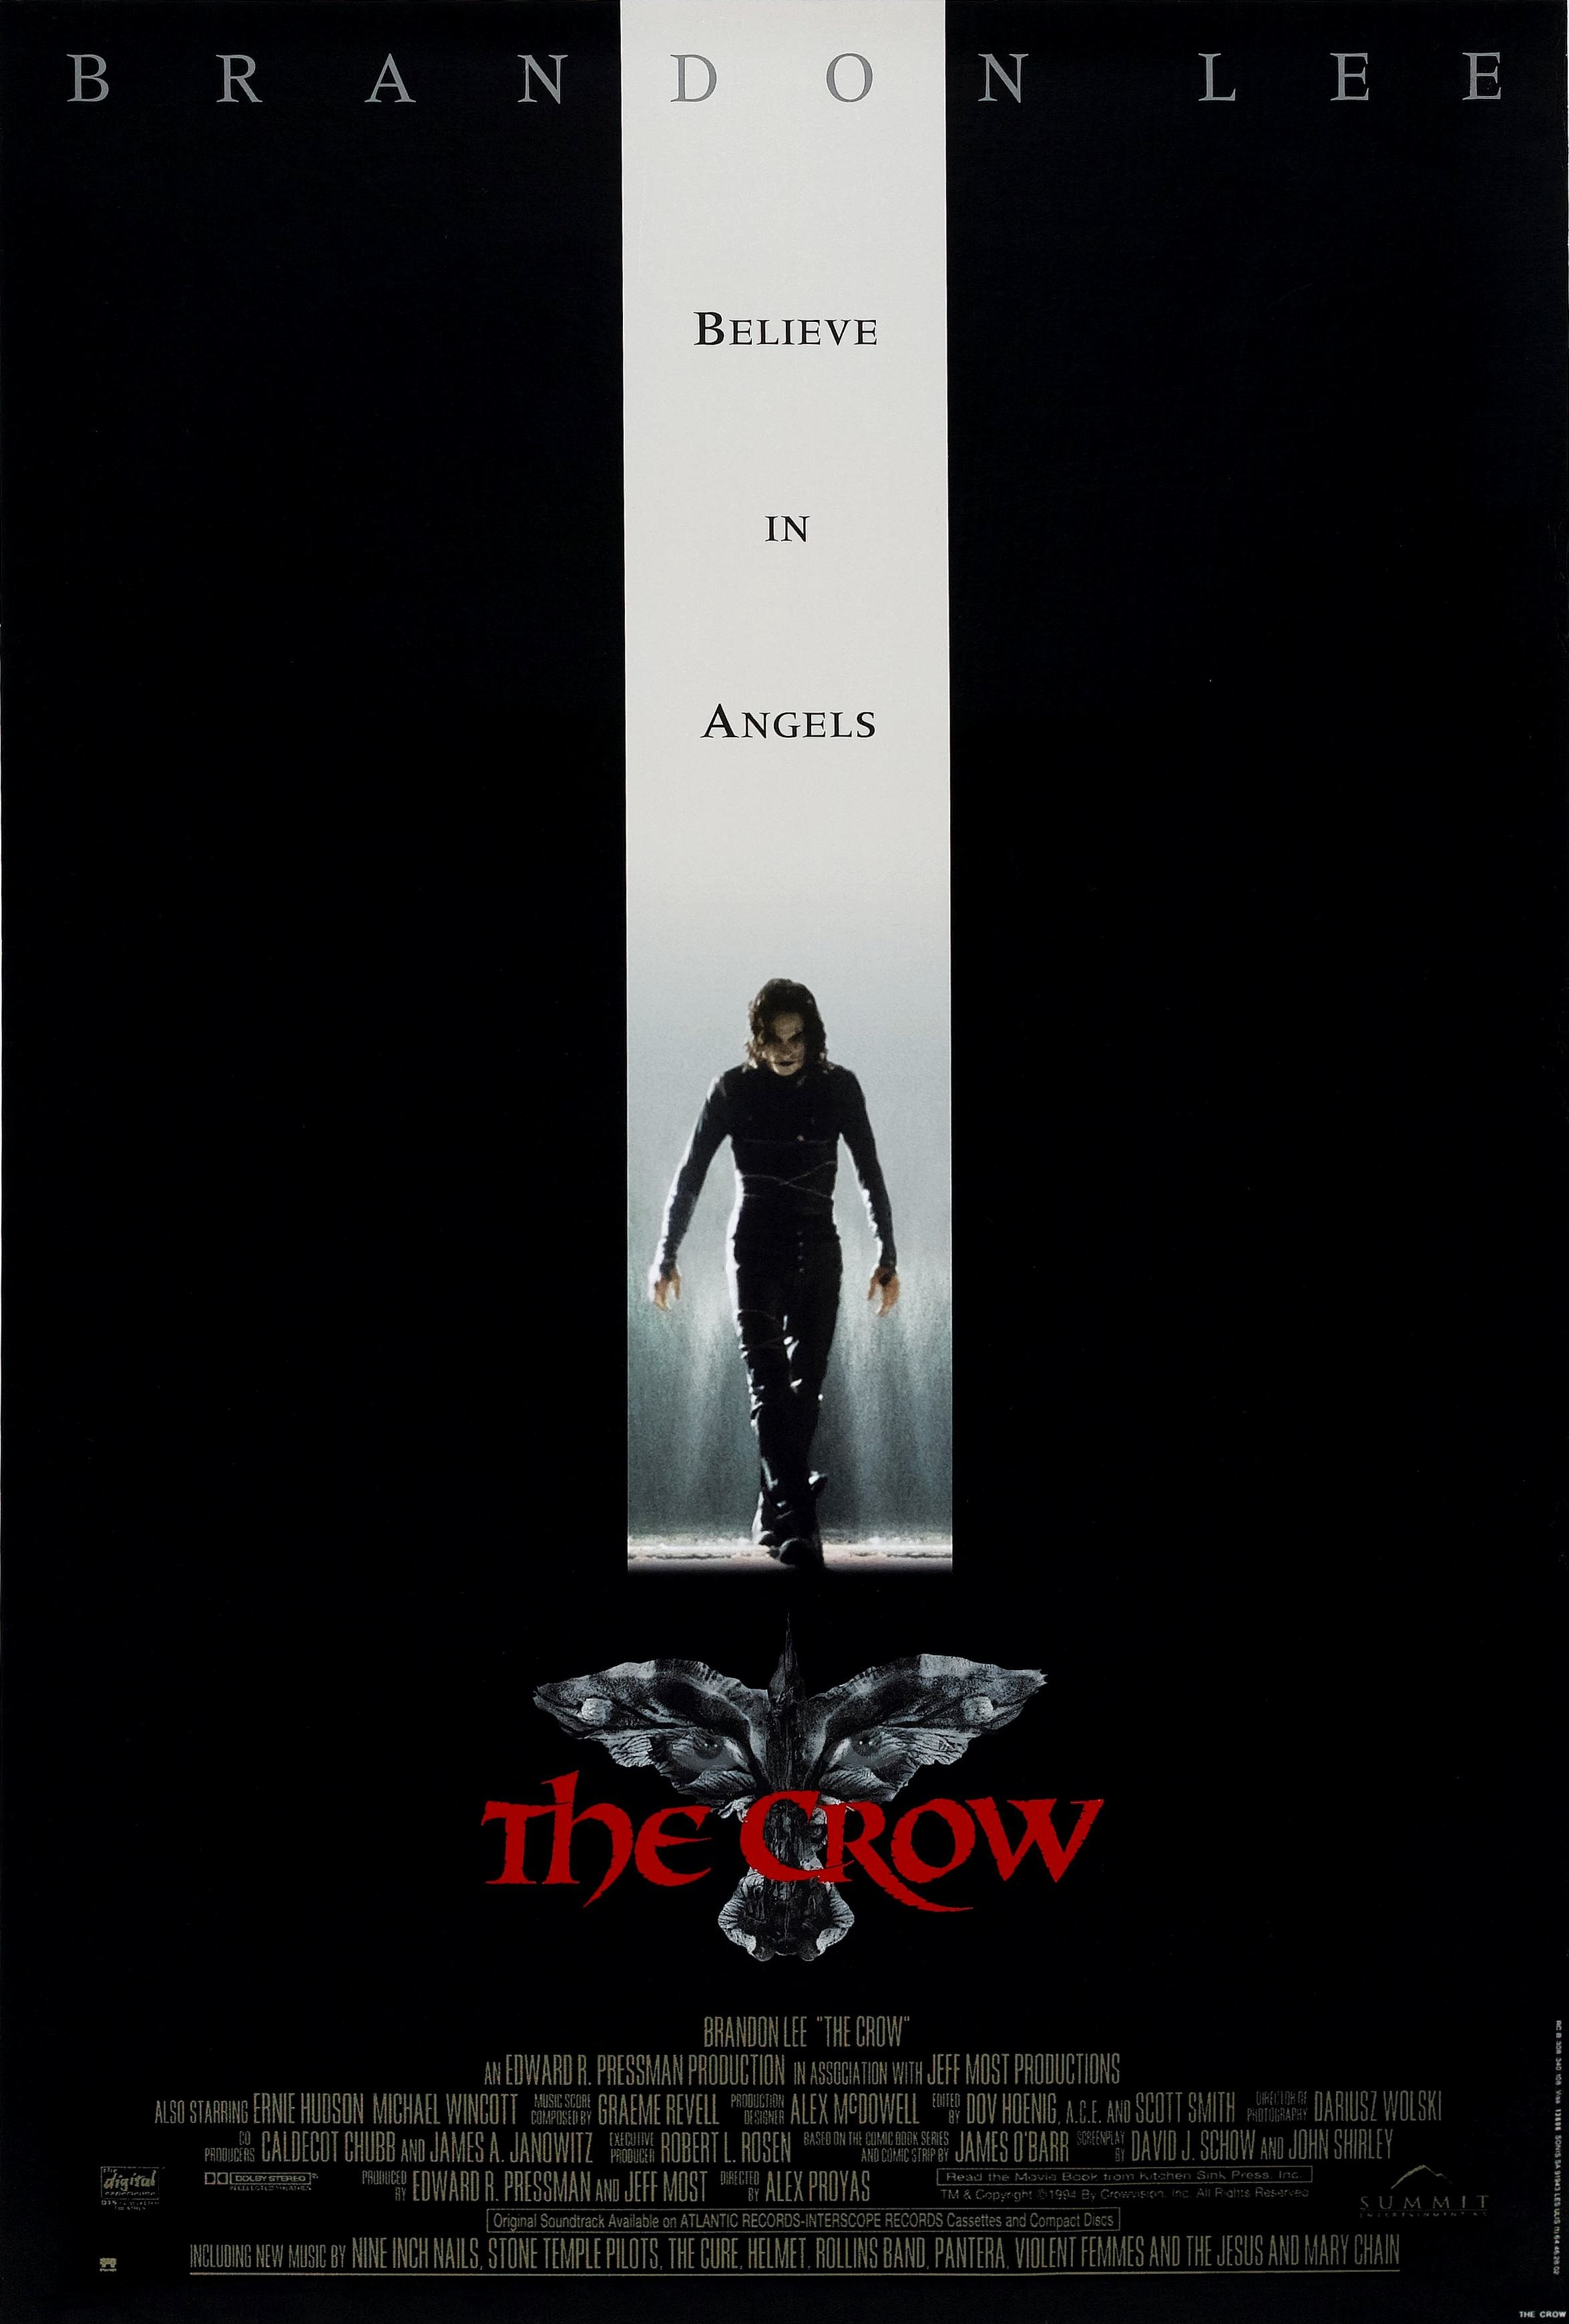 . Título: The crow. Director: Alex Proyas. Duración: 97 minutos. País: EE.UU. Año: 1994. Género: Cómic / Acción.  Guión: David Schow, John Shirley (cómic: James O'Barr). Reparto: Brandon Lee, Ernie Hudson, Michael Wincott, Bai Ling, David Patrick Kelly, Angel David, Anna Thomson (AKA Anna Levine), Rochelle David. Productora: Miramax, Gaumont. NOTA PANDORA: 8.5/10. No recomendada para […]